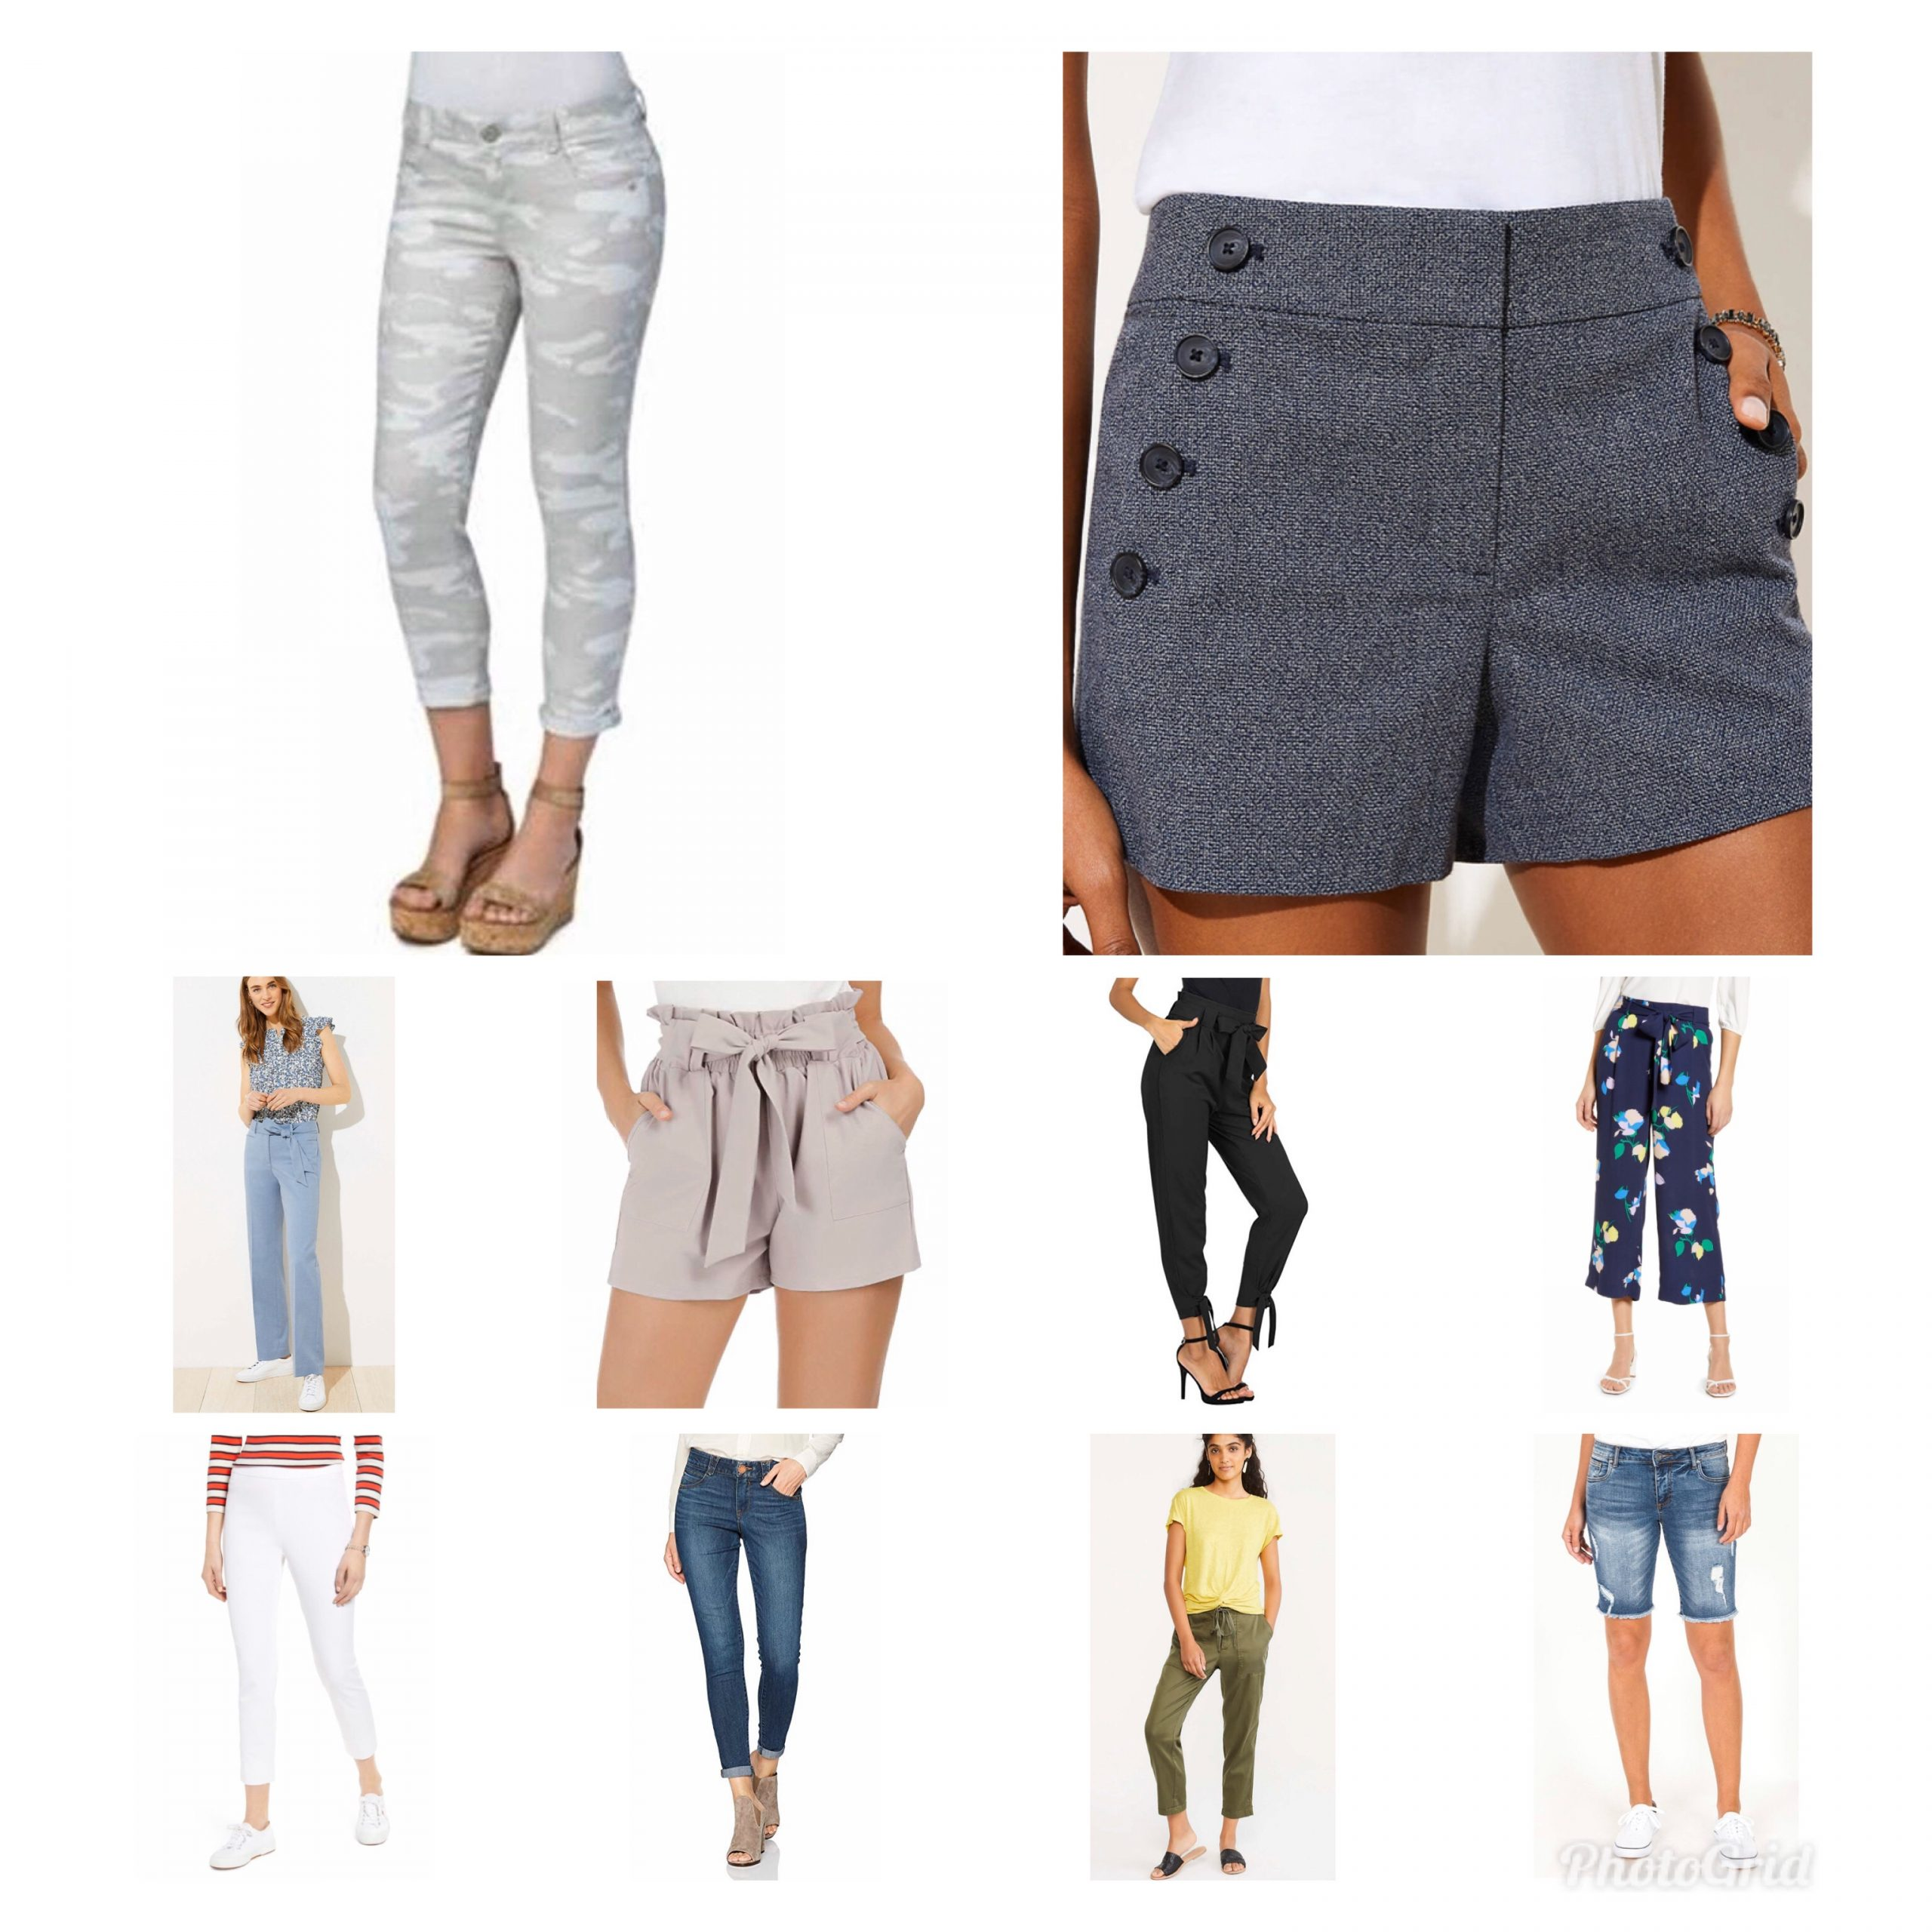 Pants and Shorts for Spring by BB